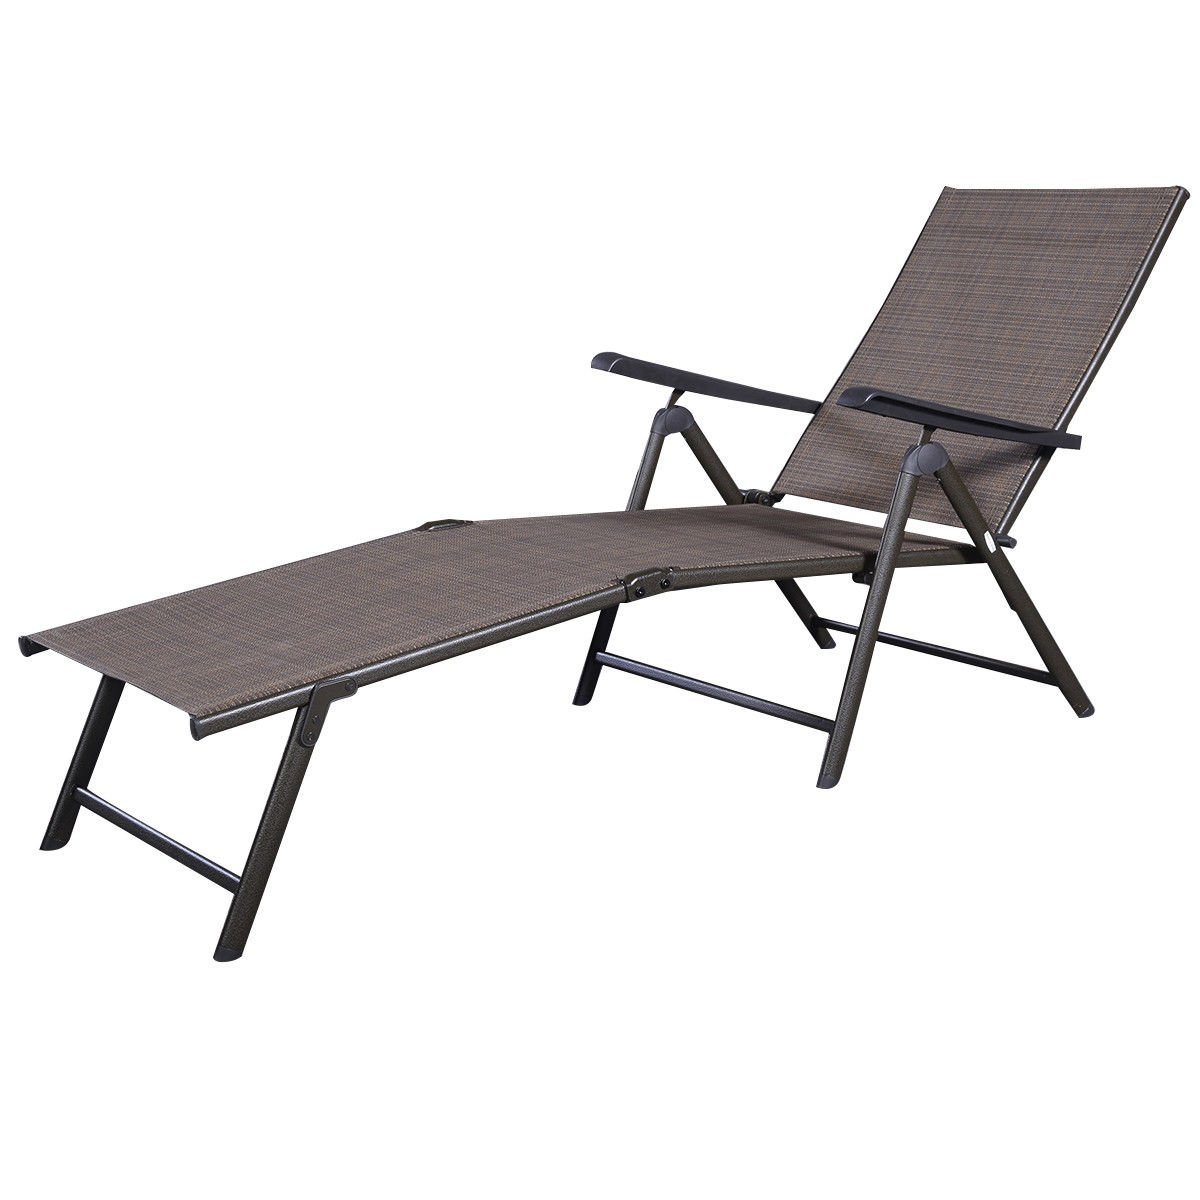 GHP Outdoor Patio Furniture Textilene Adjustable Pool Chaise Lounge Chair